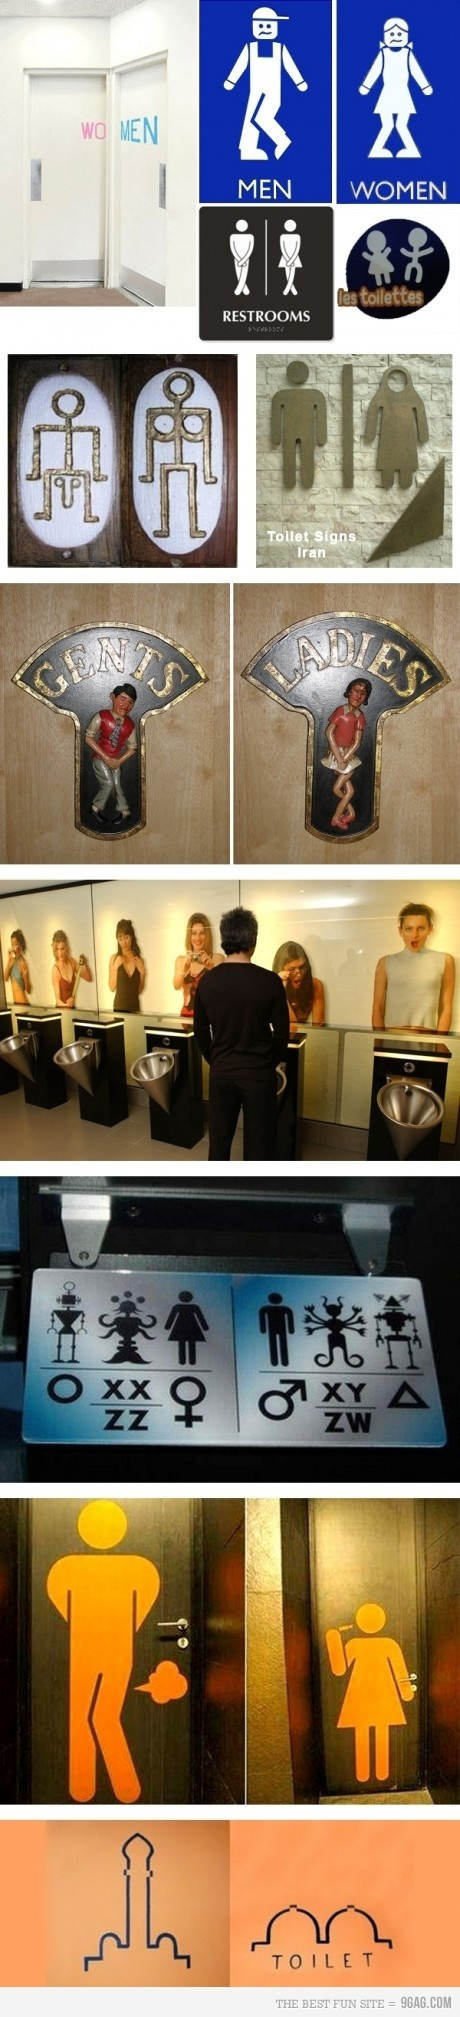 loads of funny toilet signs